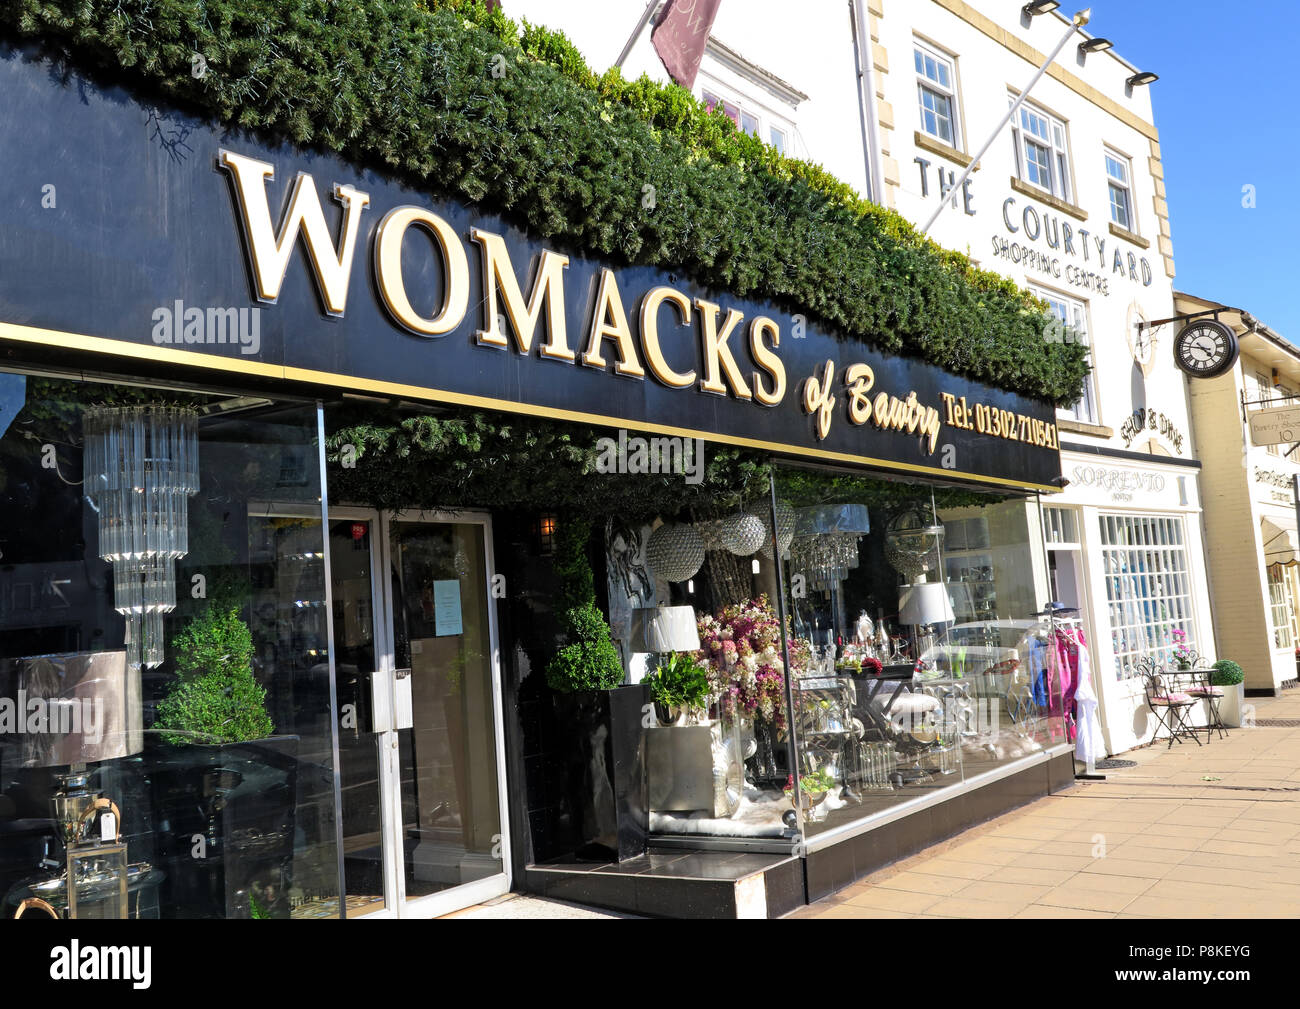 Womacks of Bawtry, 16-18 High St, Bawtry, Doncaster, South Yorkshire, England, UK,  DN10 6JE Stock Photo